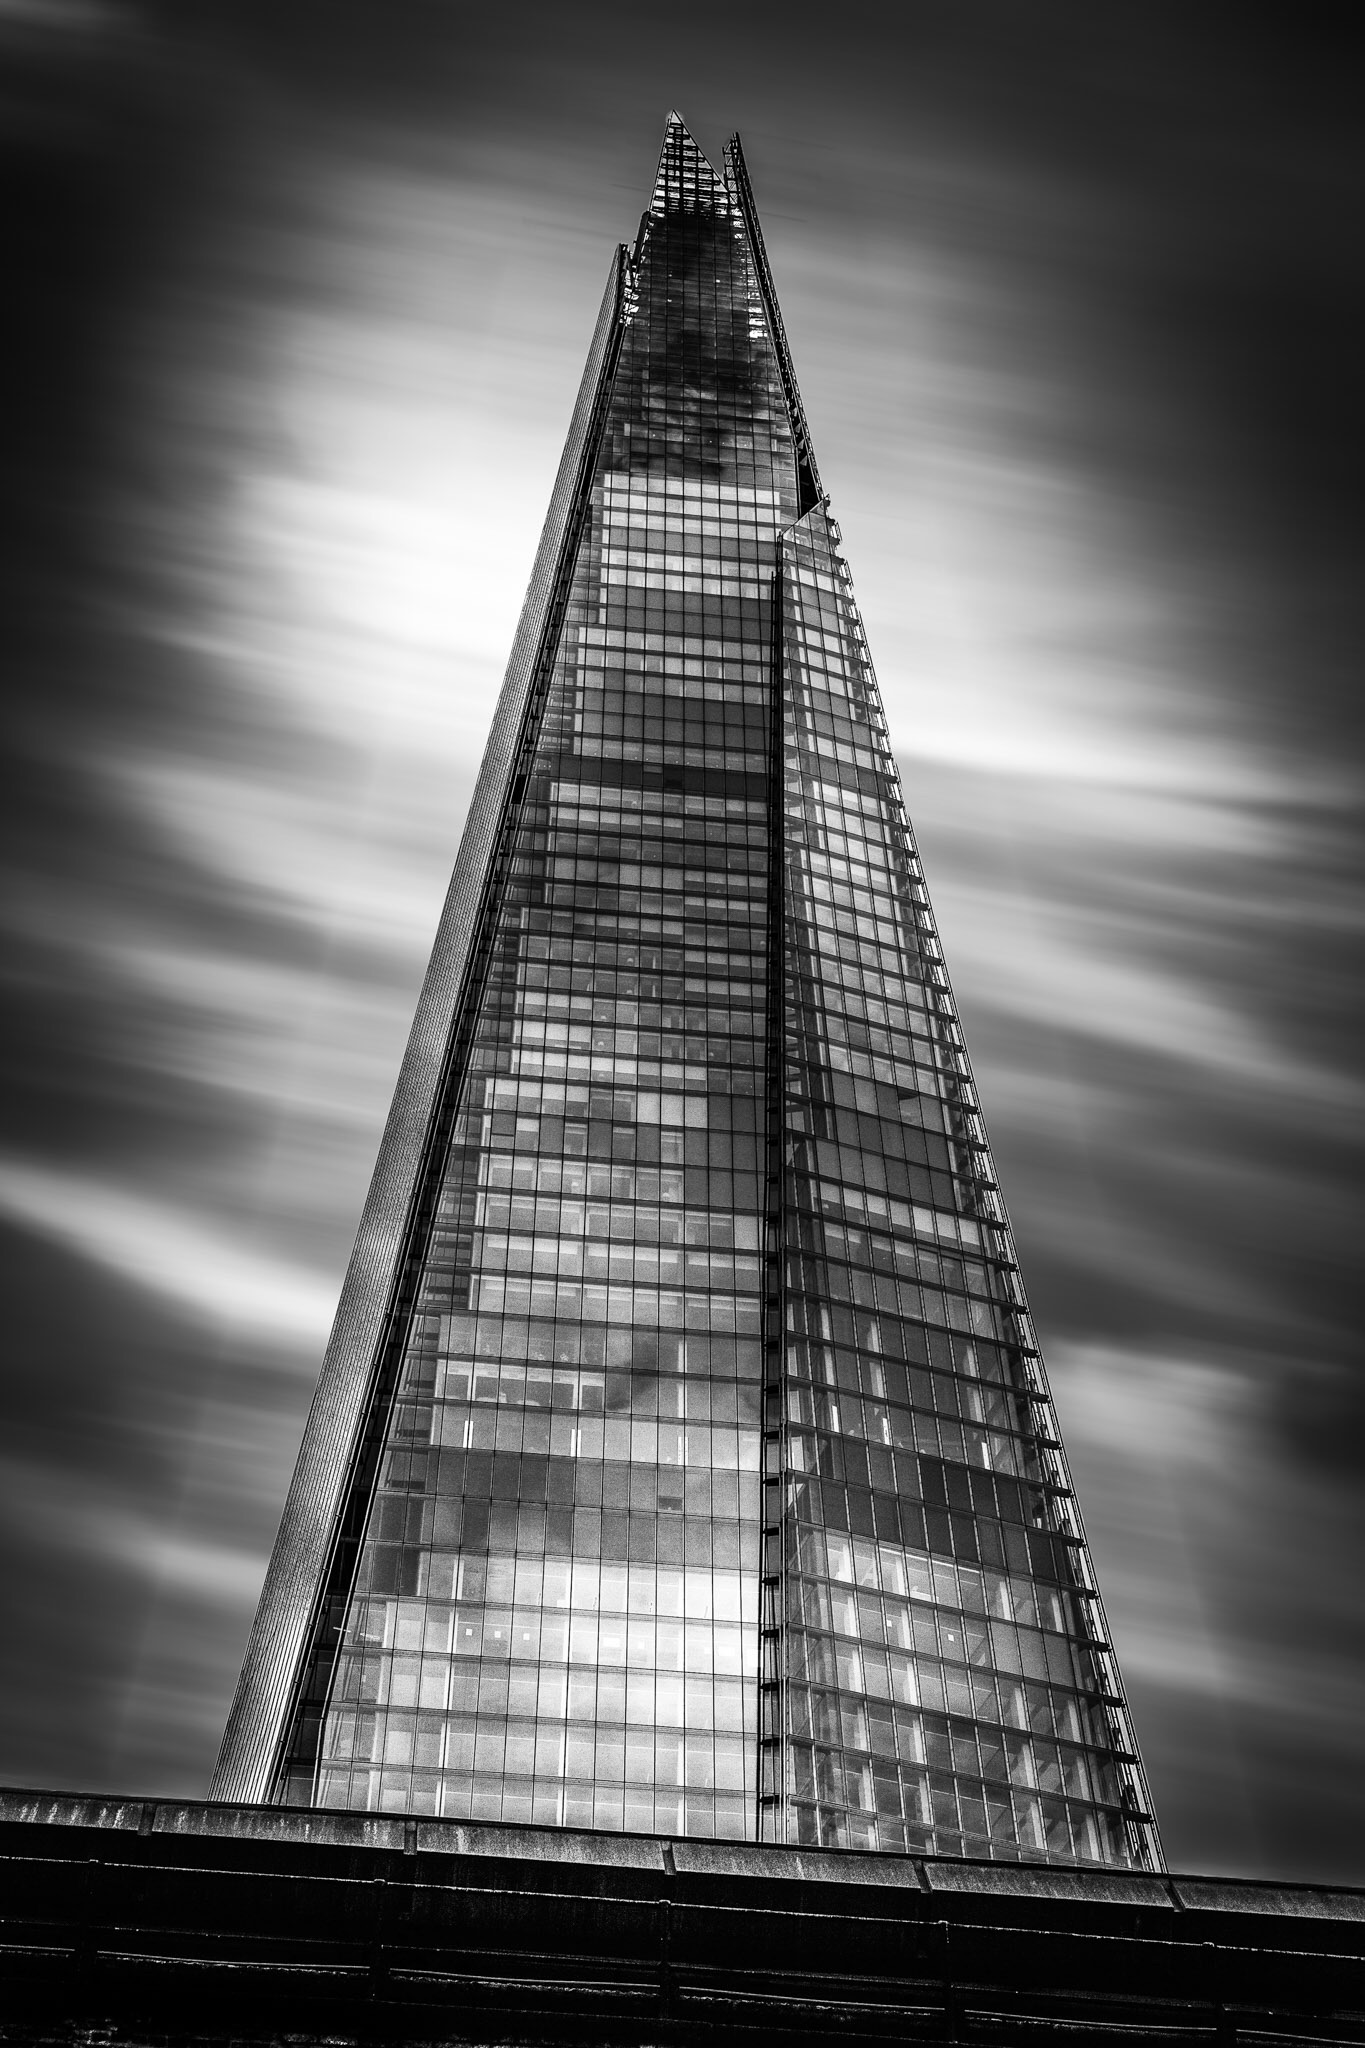 This picture of The Shard in London is one of my favourite black and white pictures of London